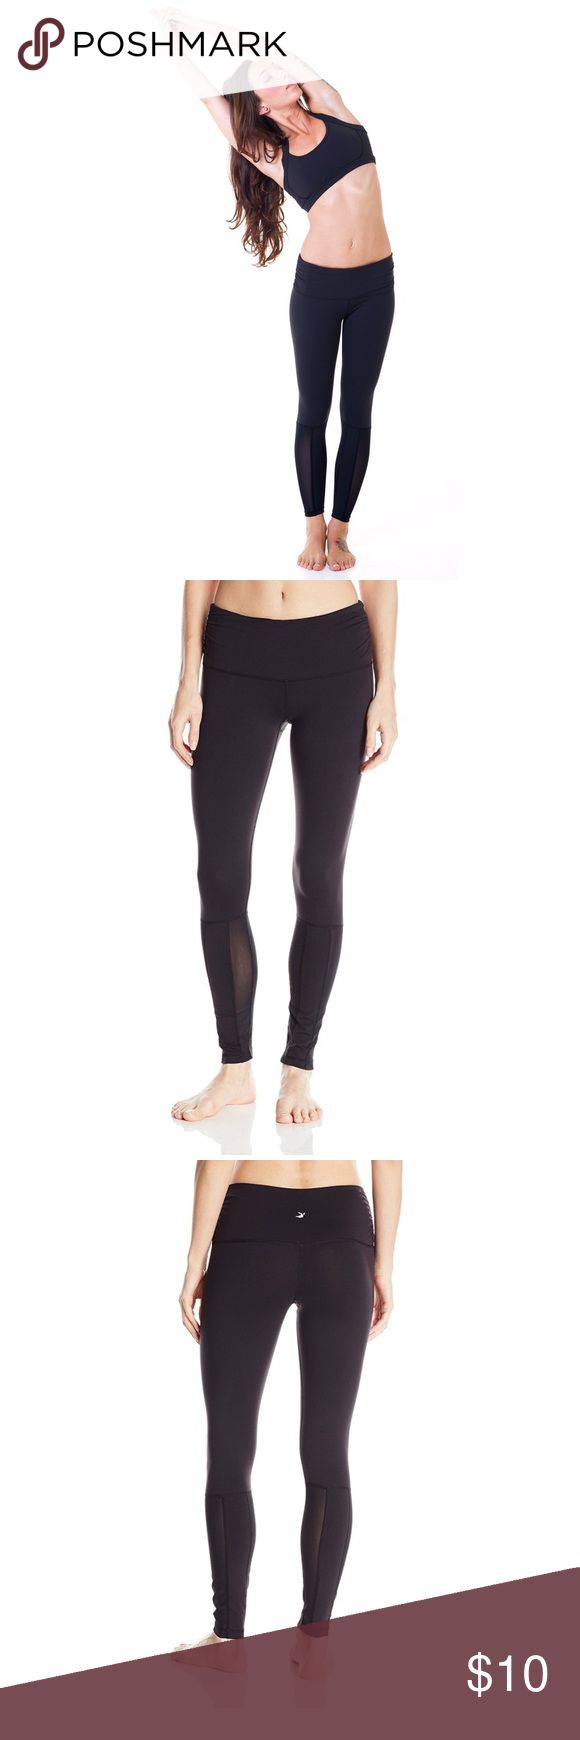 """Glyder Sheer Love Leggings Add some excitement to your workout with these sleek and stylish mesh inset leggings. The """" Sheer Love"""" legging features fierce, sheer stretch mesh vertical panels at the lower legs. The ultimate statement piece that can be worn in and out of the gym, pairs perfect with a tank and lace-up boots. Pre-loved. Very slight pilling as seen in last photo.                                                                  88% Nylon/12% Spandex  Flat seam garment construction…"""